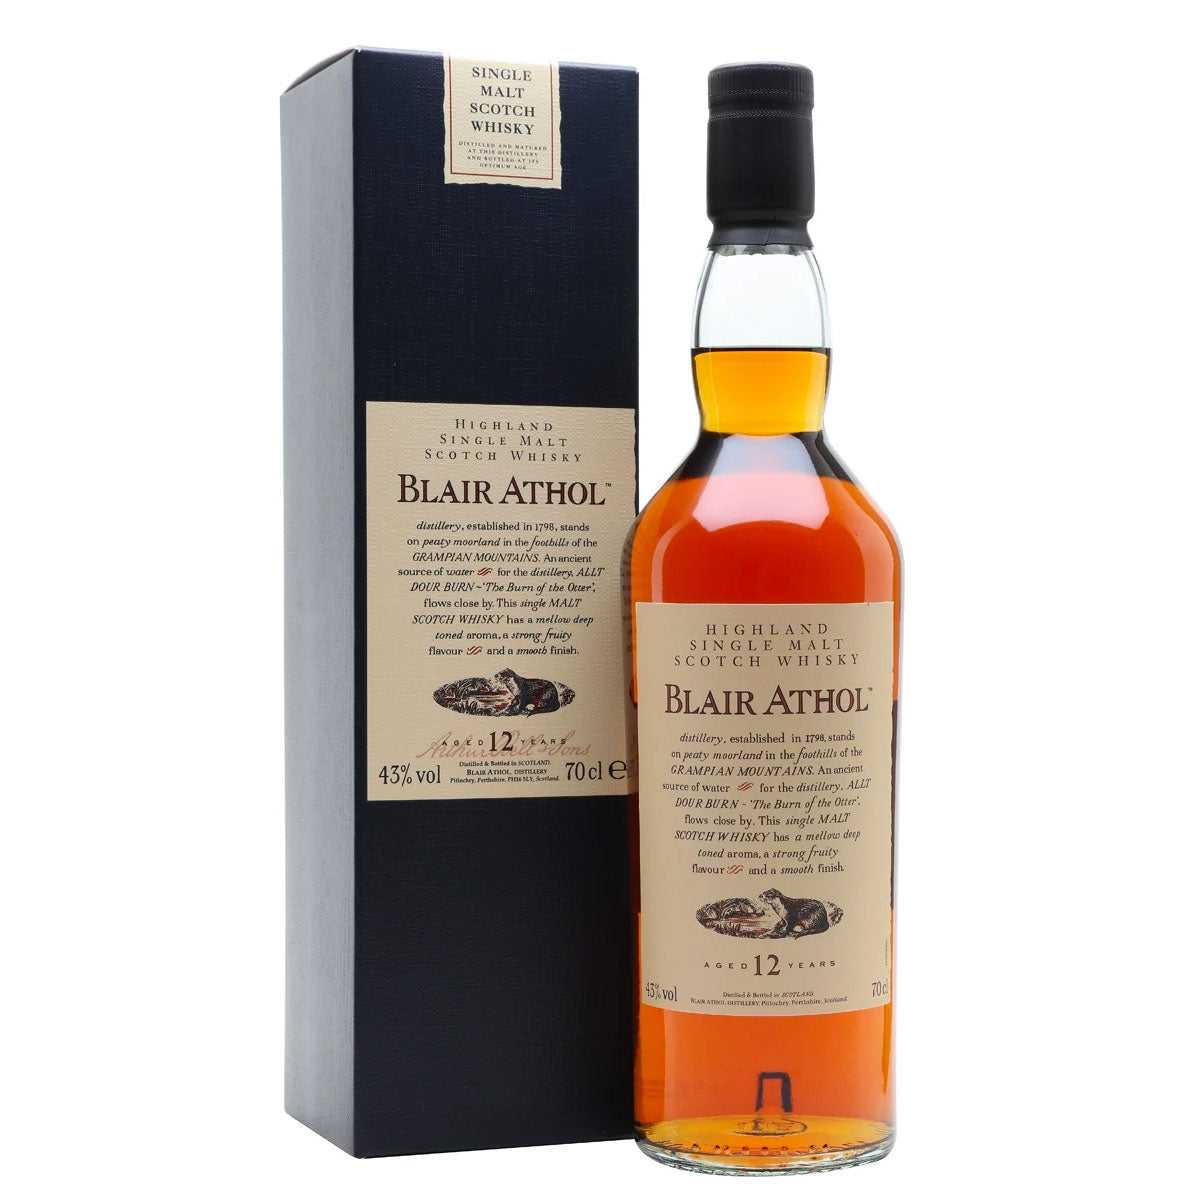 Blair Athol 12 Year Old, Flora & Fauna